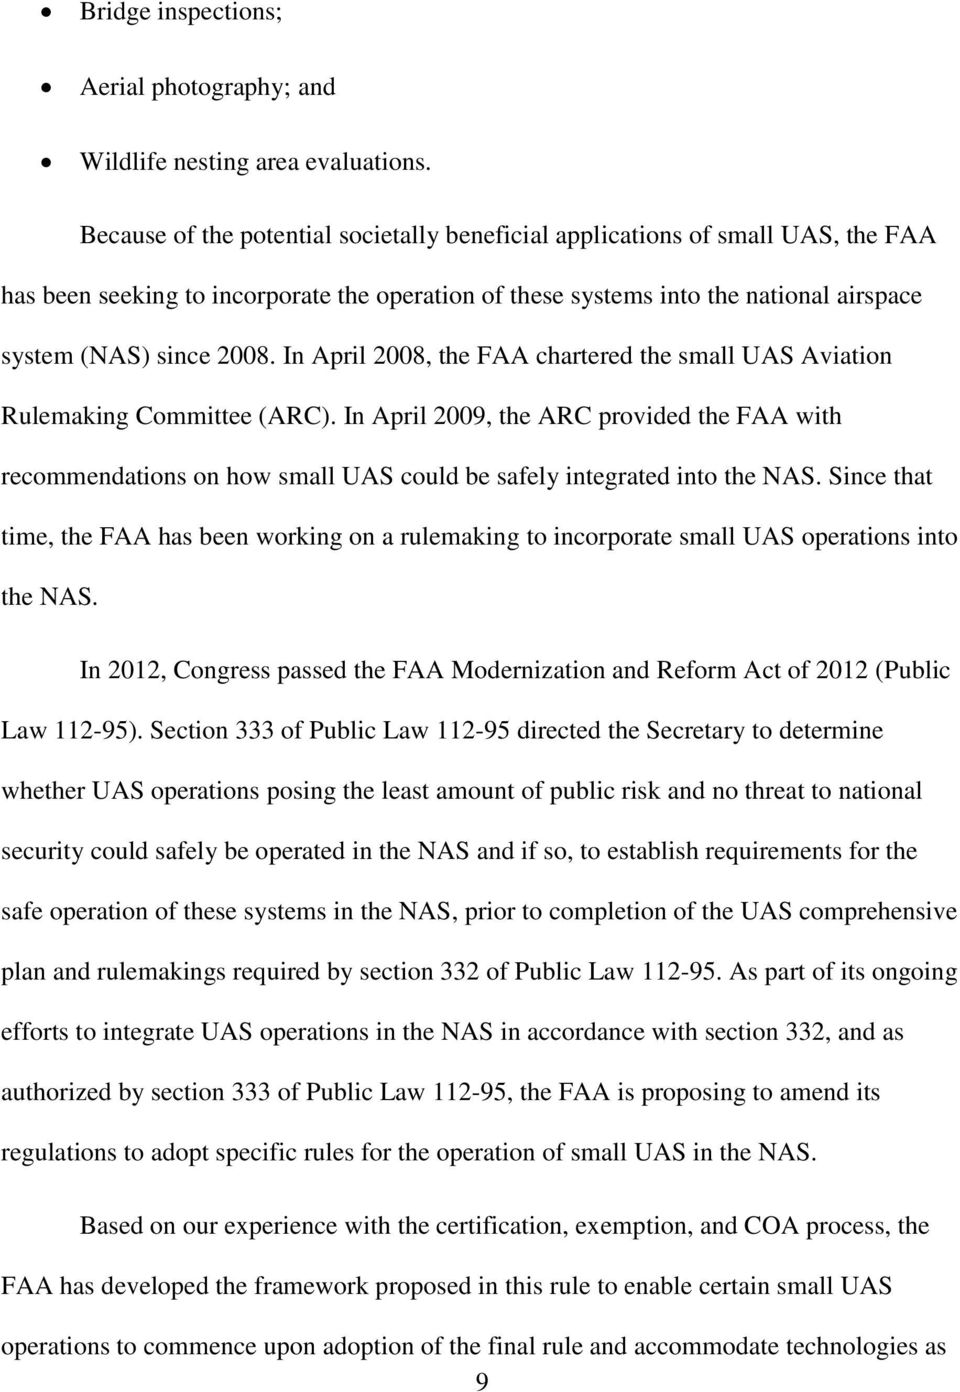 In April 2008, the FAA chartered the small UAS Aviation Rulemaking Committee (ARC).